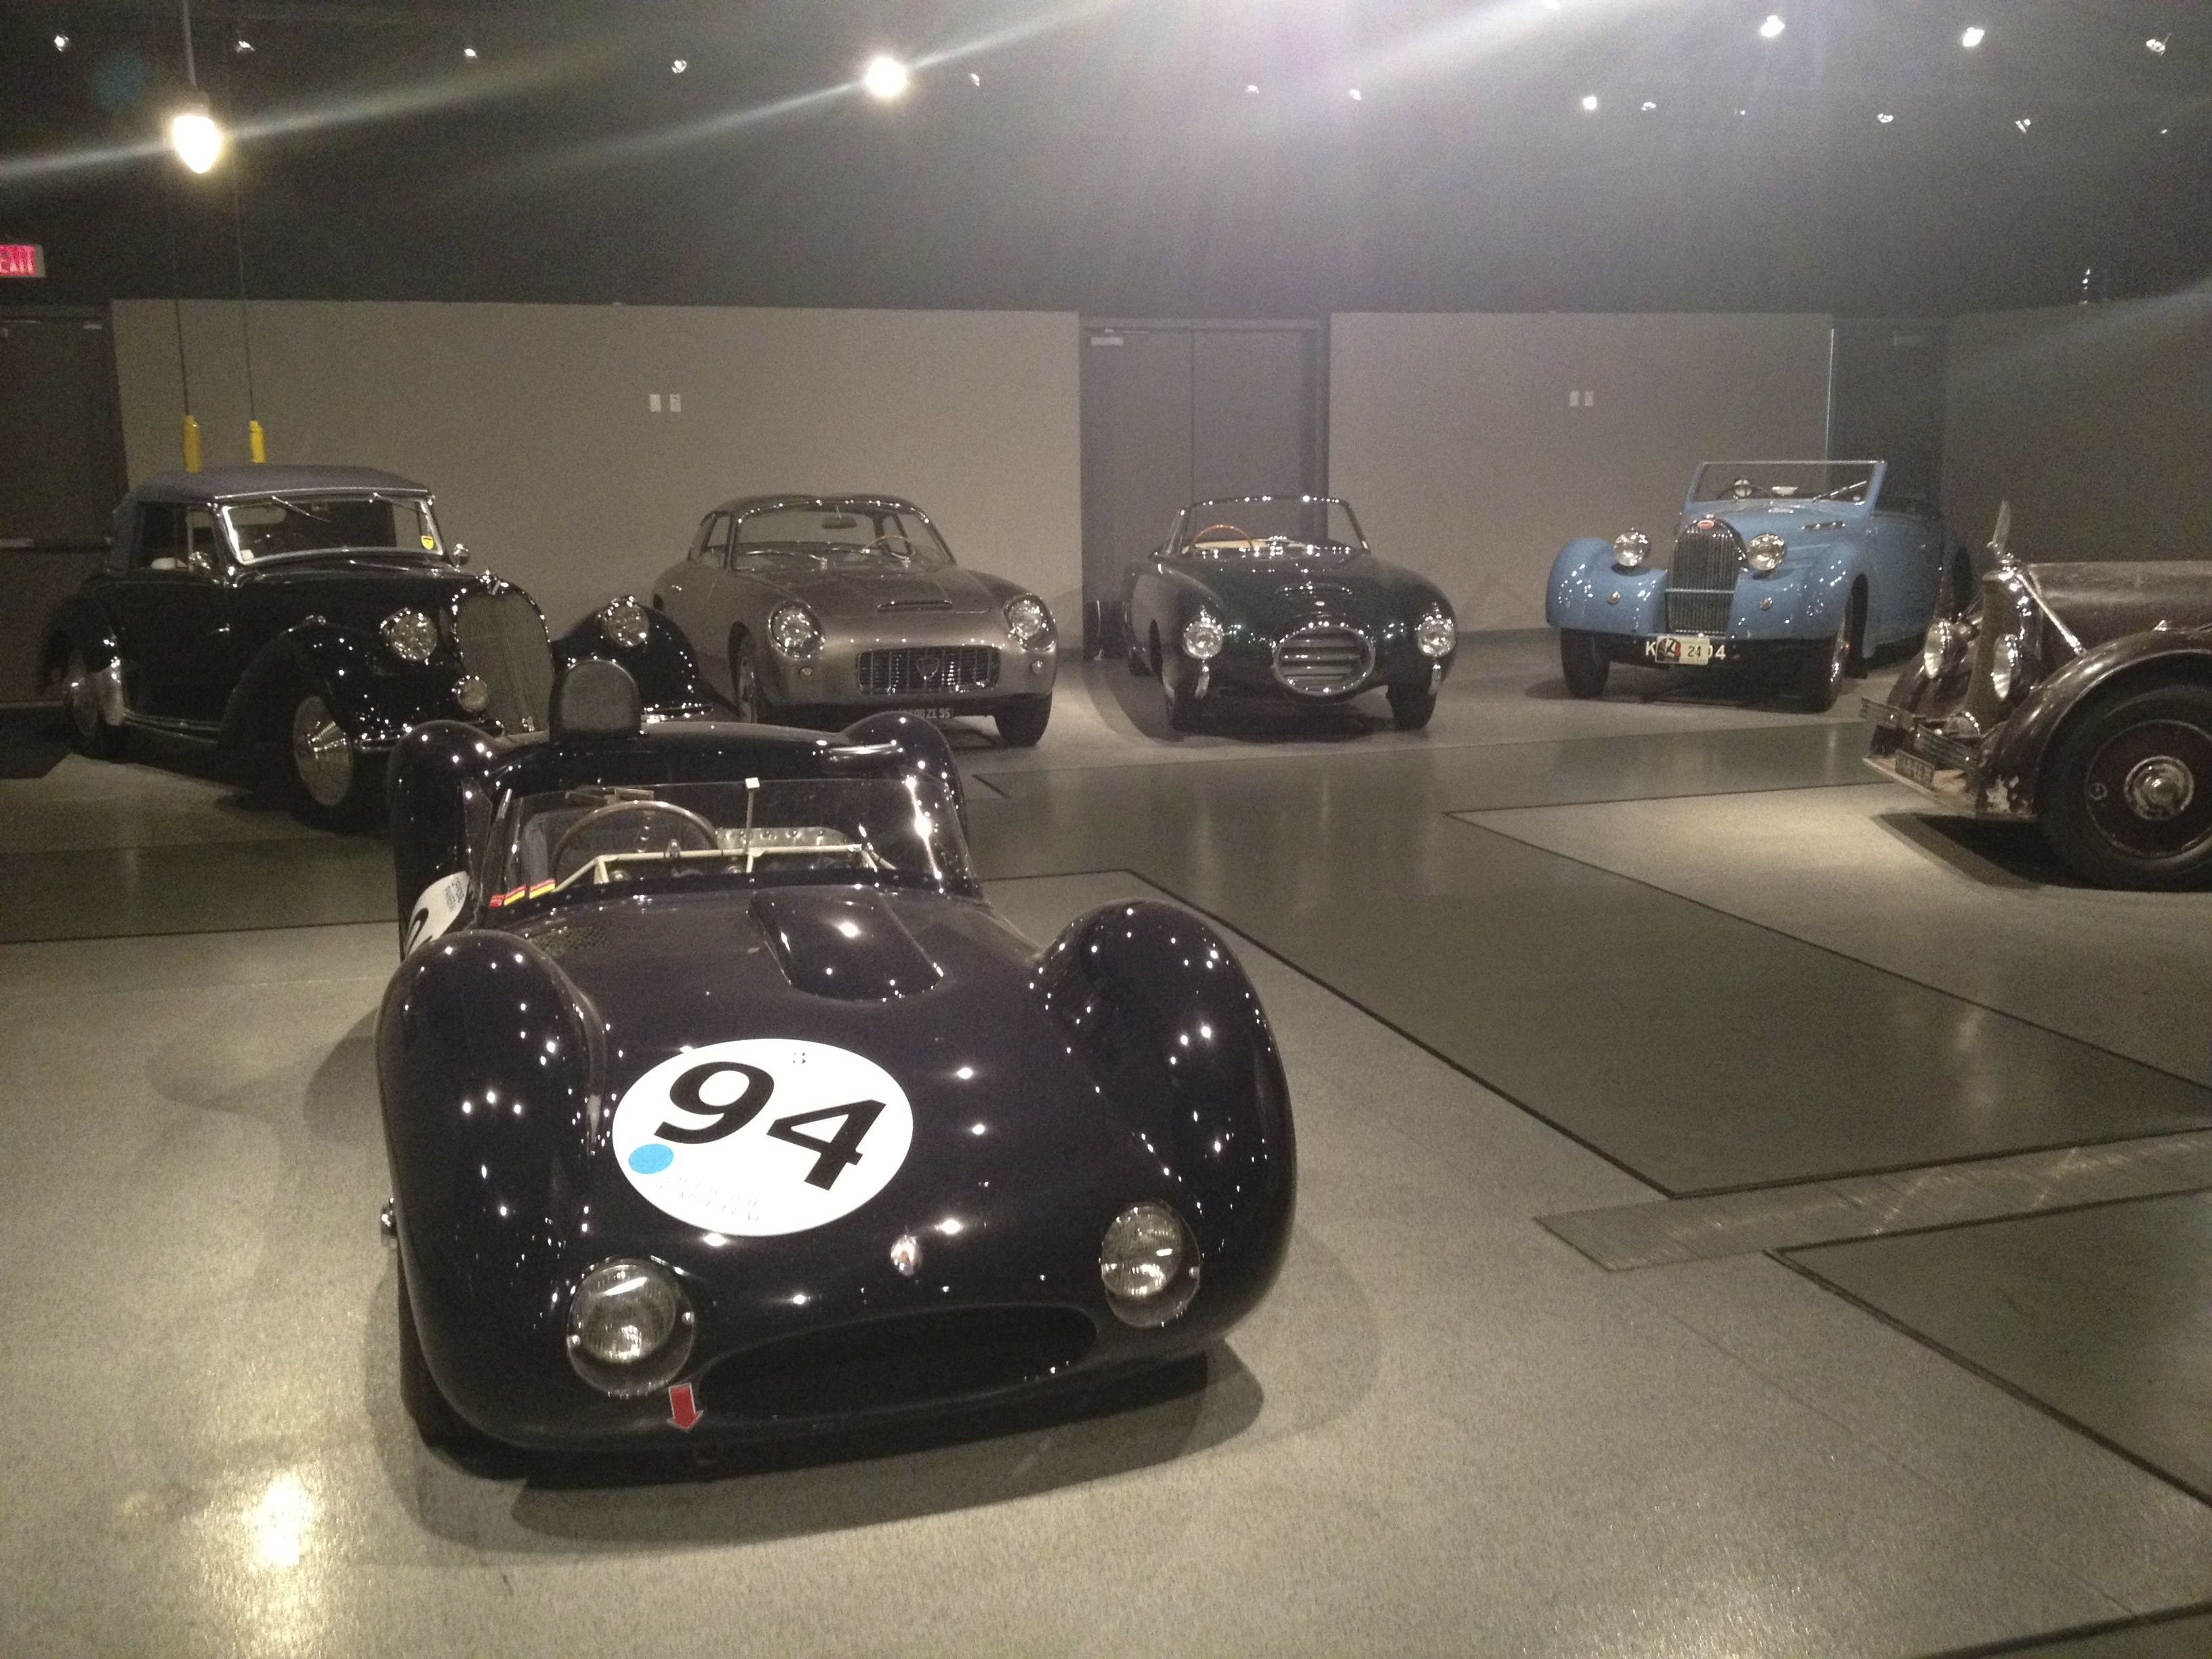 Bill Pope S Vintage Race Car Collection In Az Cars Antique Cars